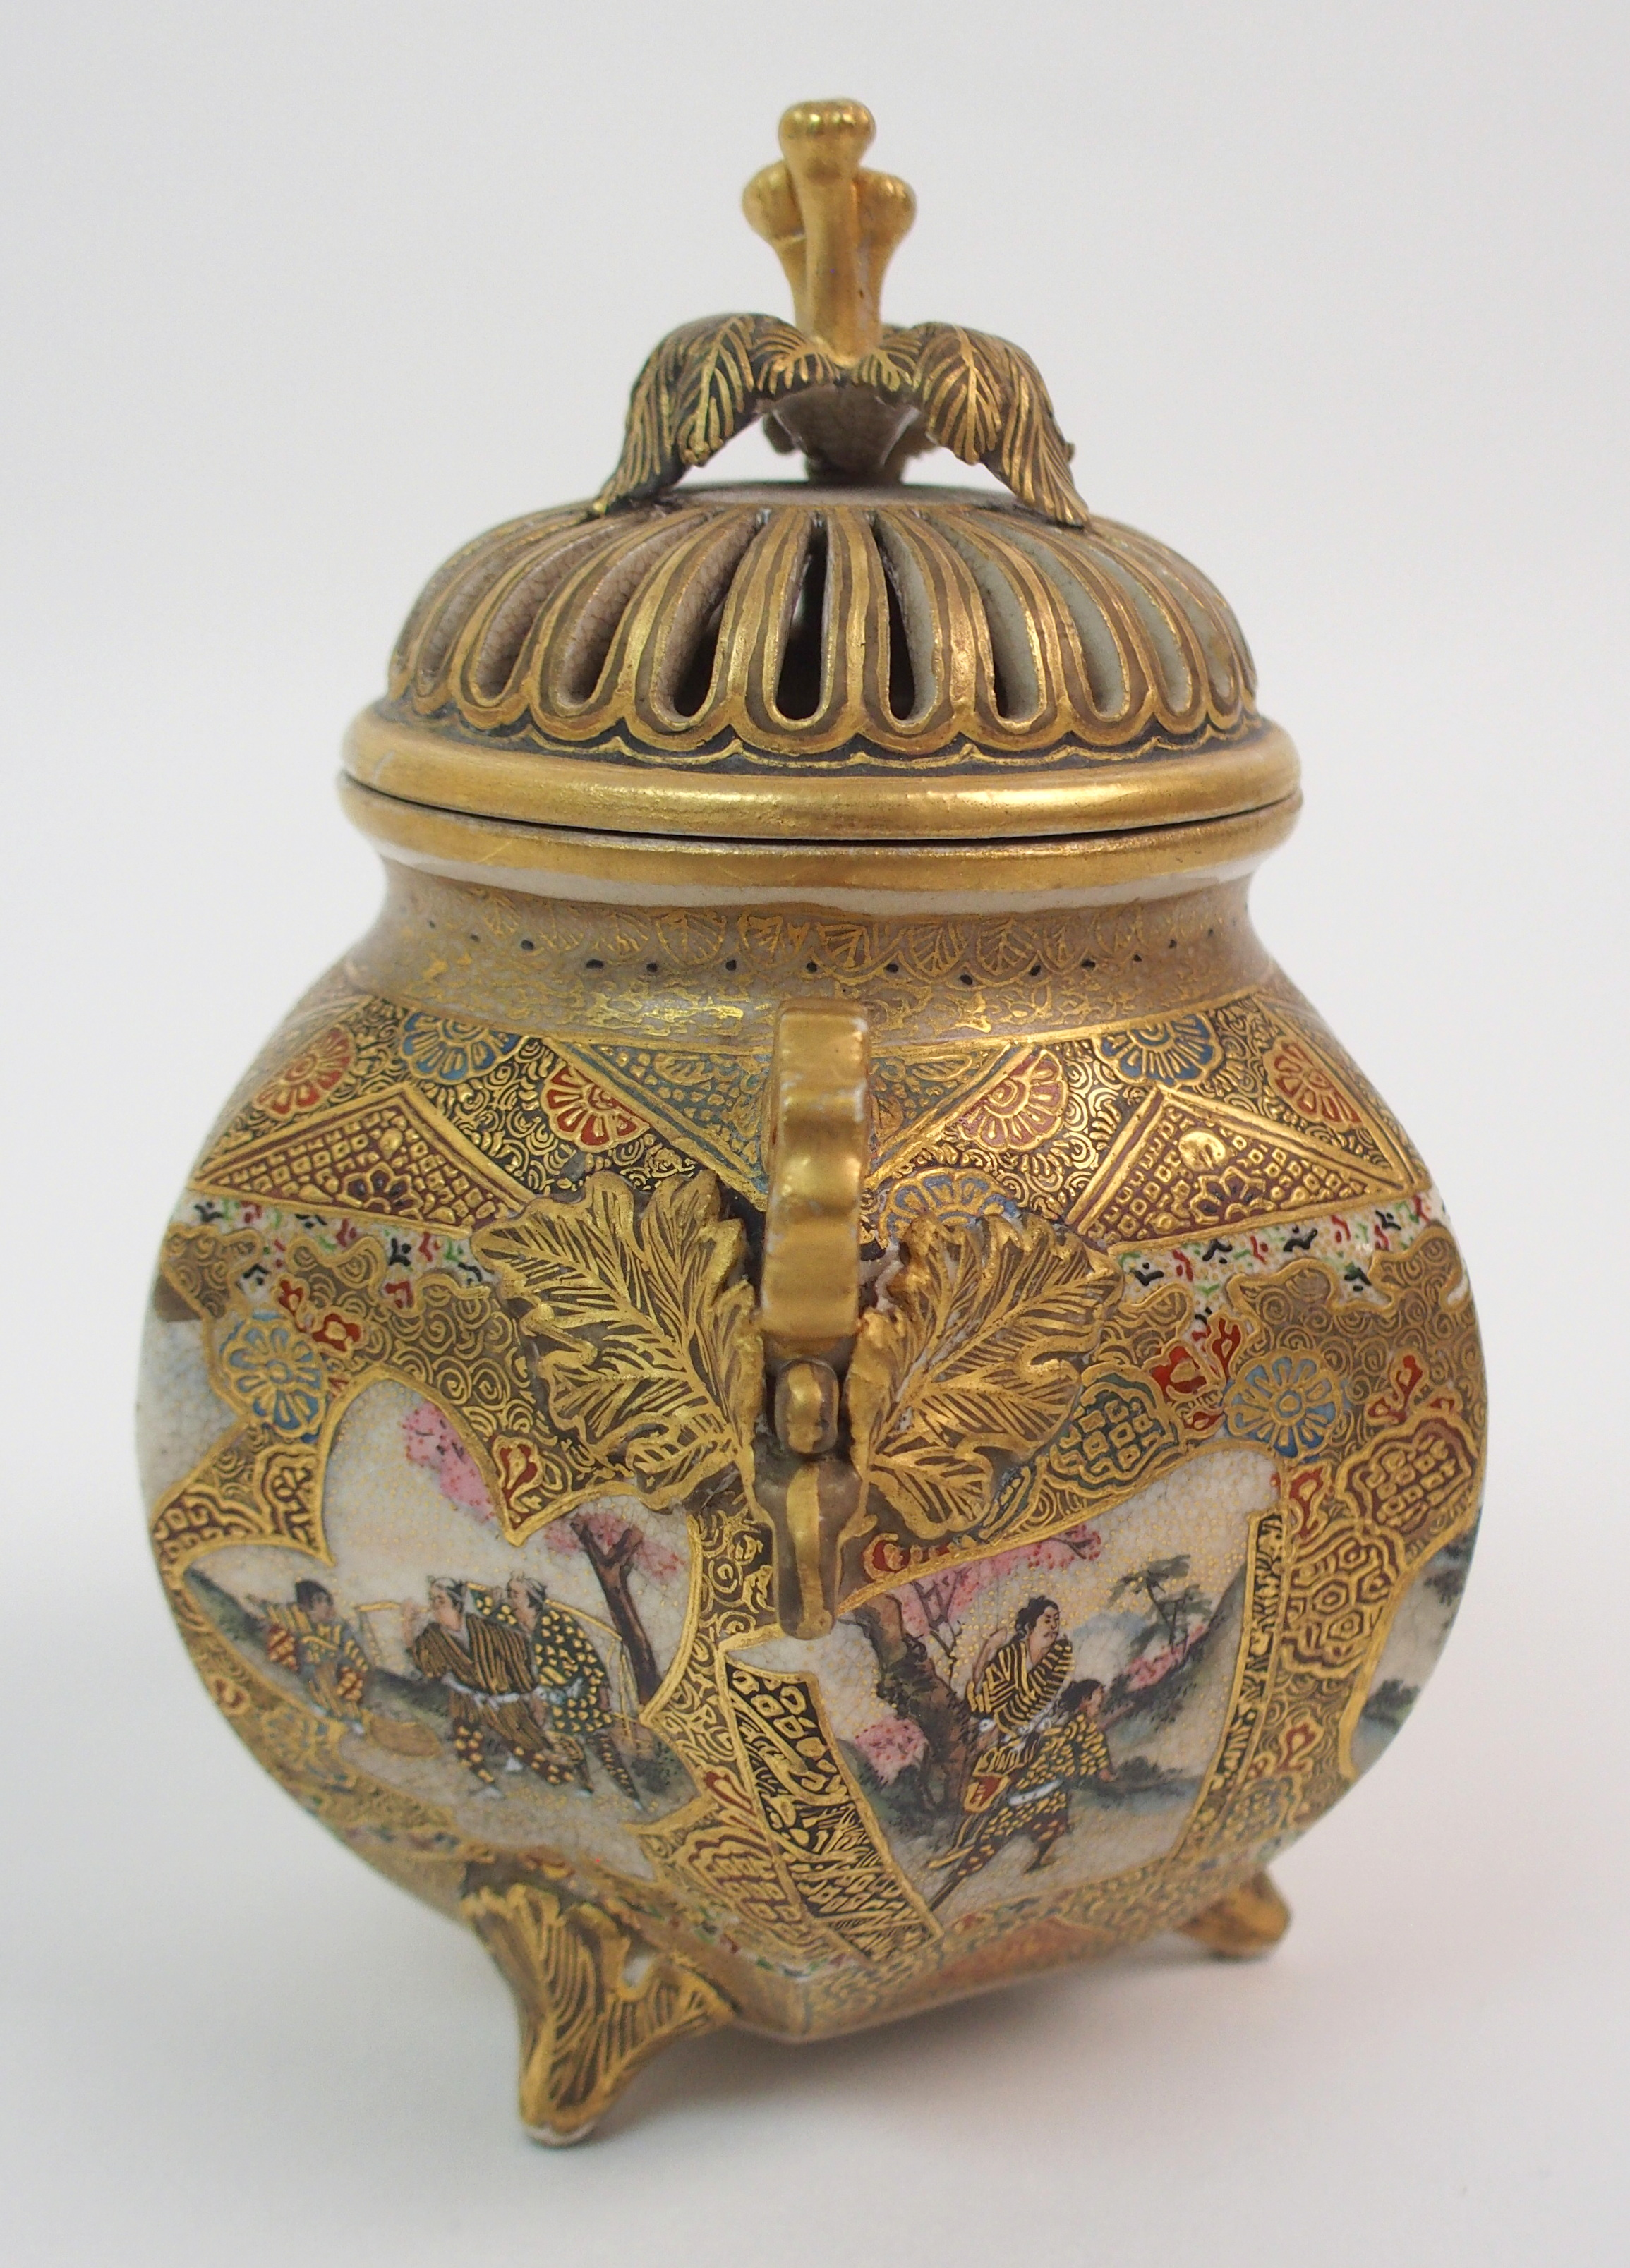 Lot 35 - A SATSUMA KORO the pierced flower form cover with foliate knop above a hexagonal body painted with